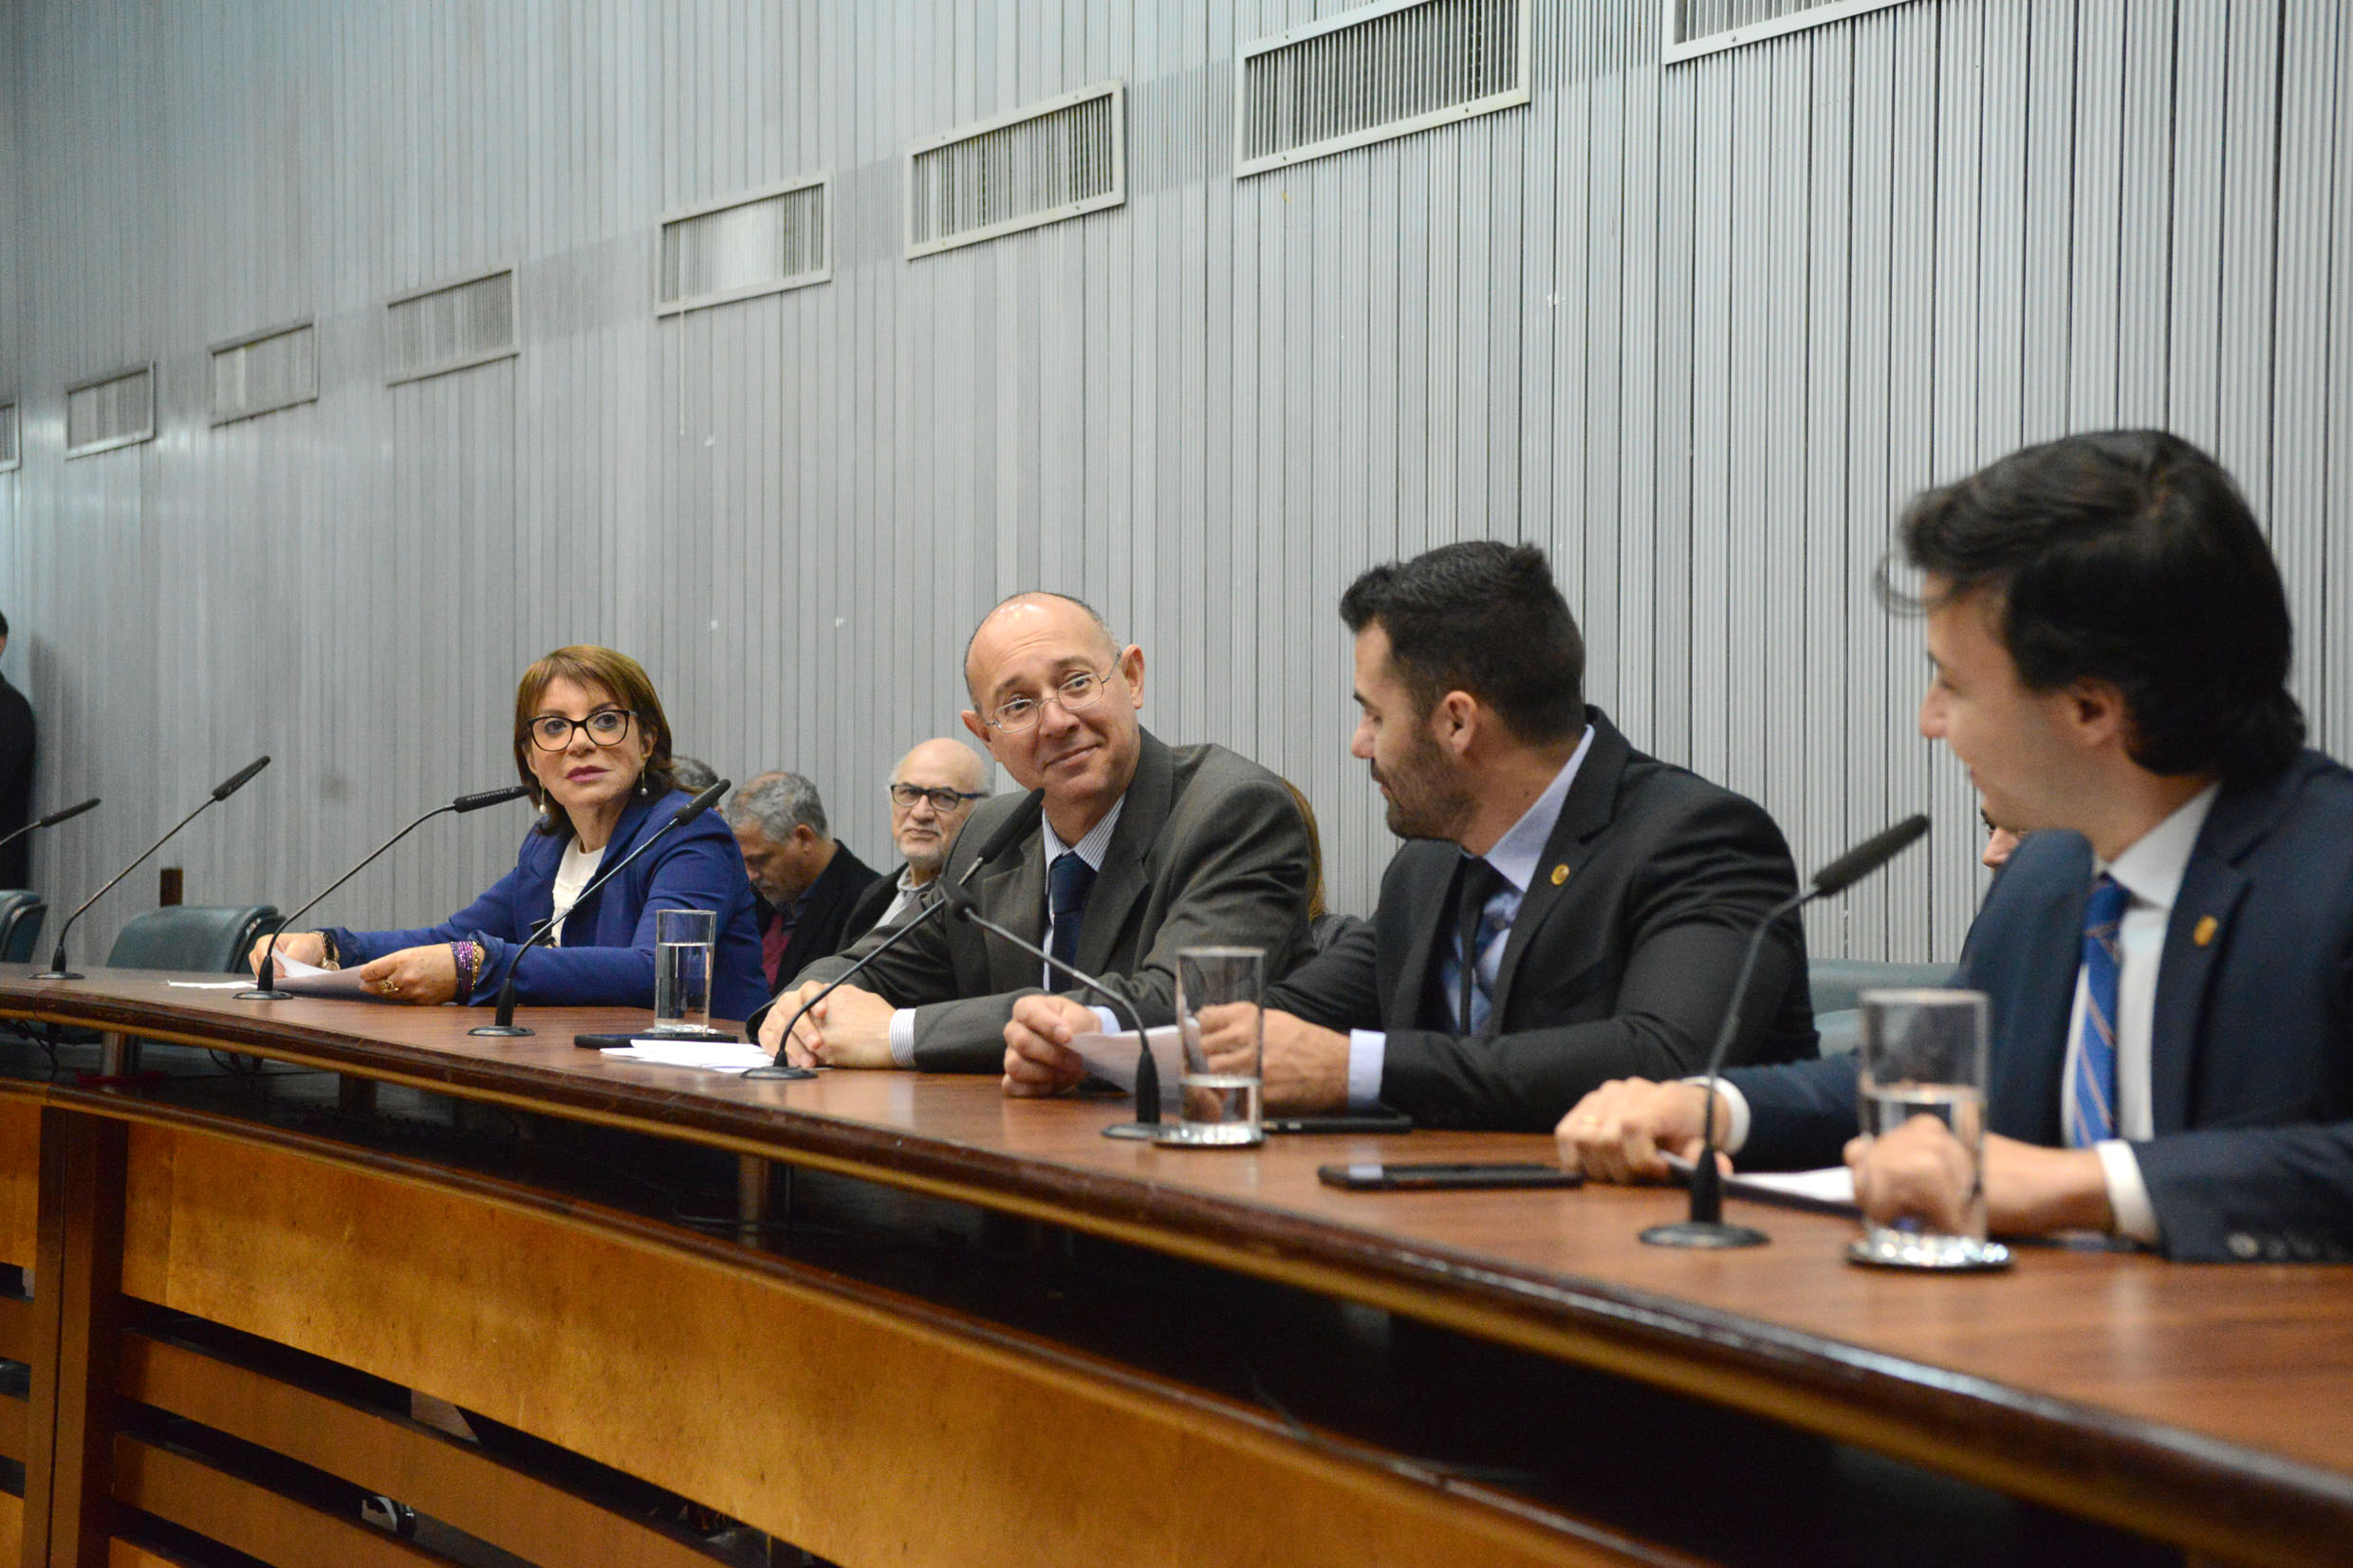 Professora Bebel, Paulo Fiorilo, Arthur do Val e Daniel José<a style='float:right' href='https://www3.al.sp.gov.br/repositorio/noticia/N-08-2019/fg237992.jpg' target=_blank><img src='/_img/material-file-download-white.png' width='14px' alt='Clique para baixar a imagem'></a>